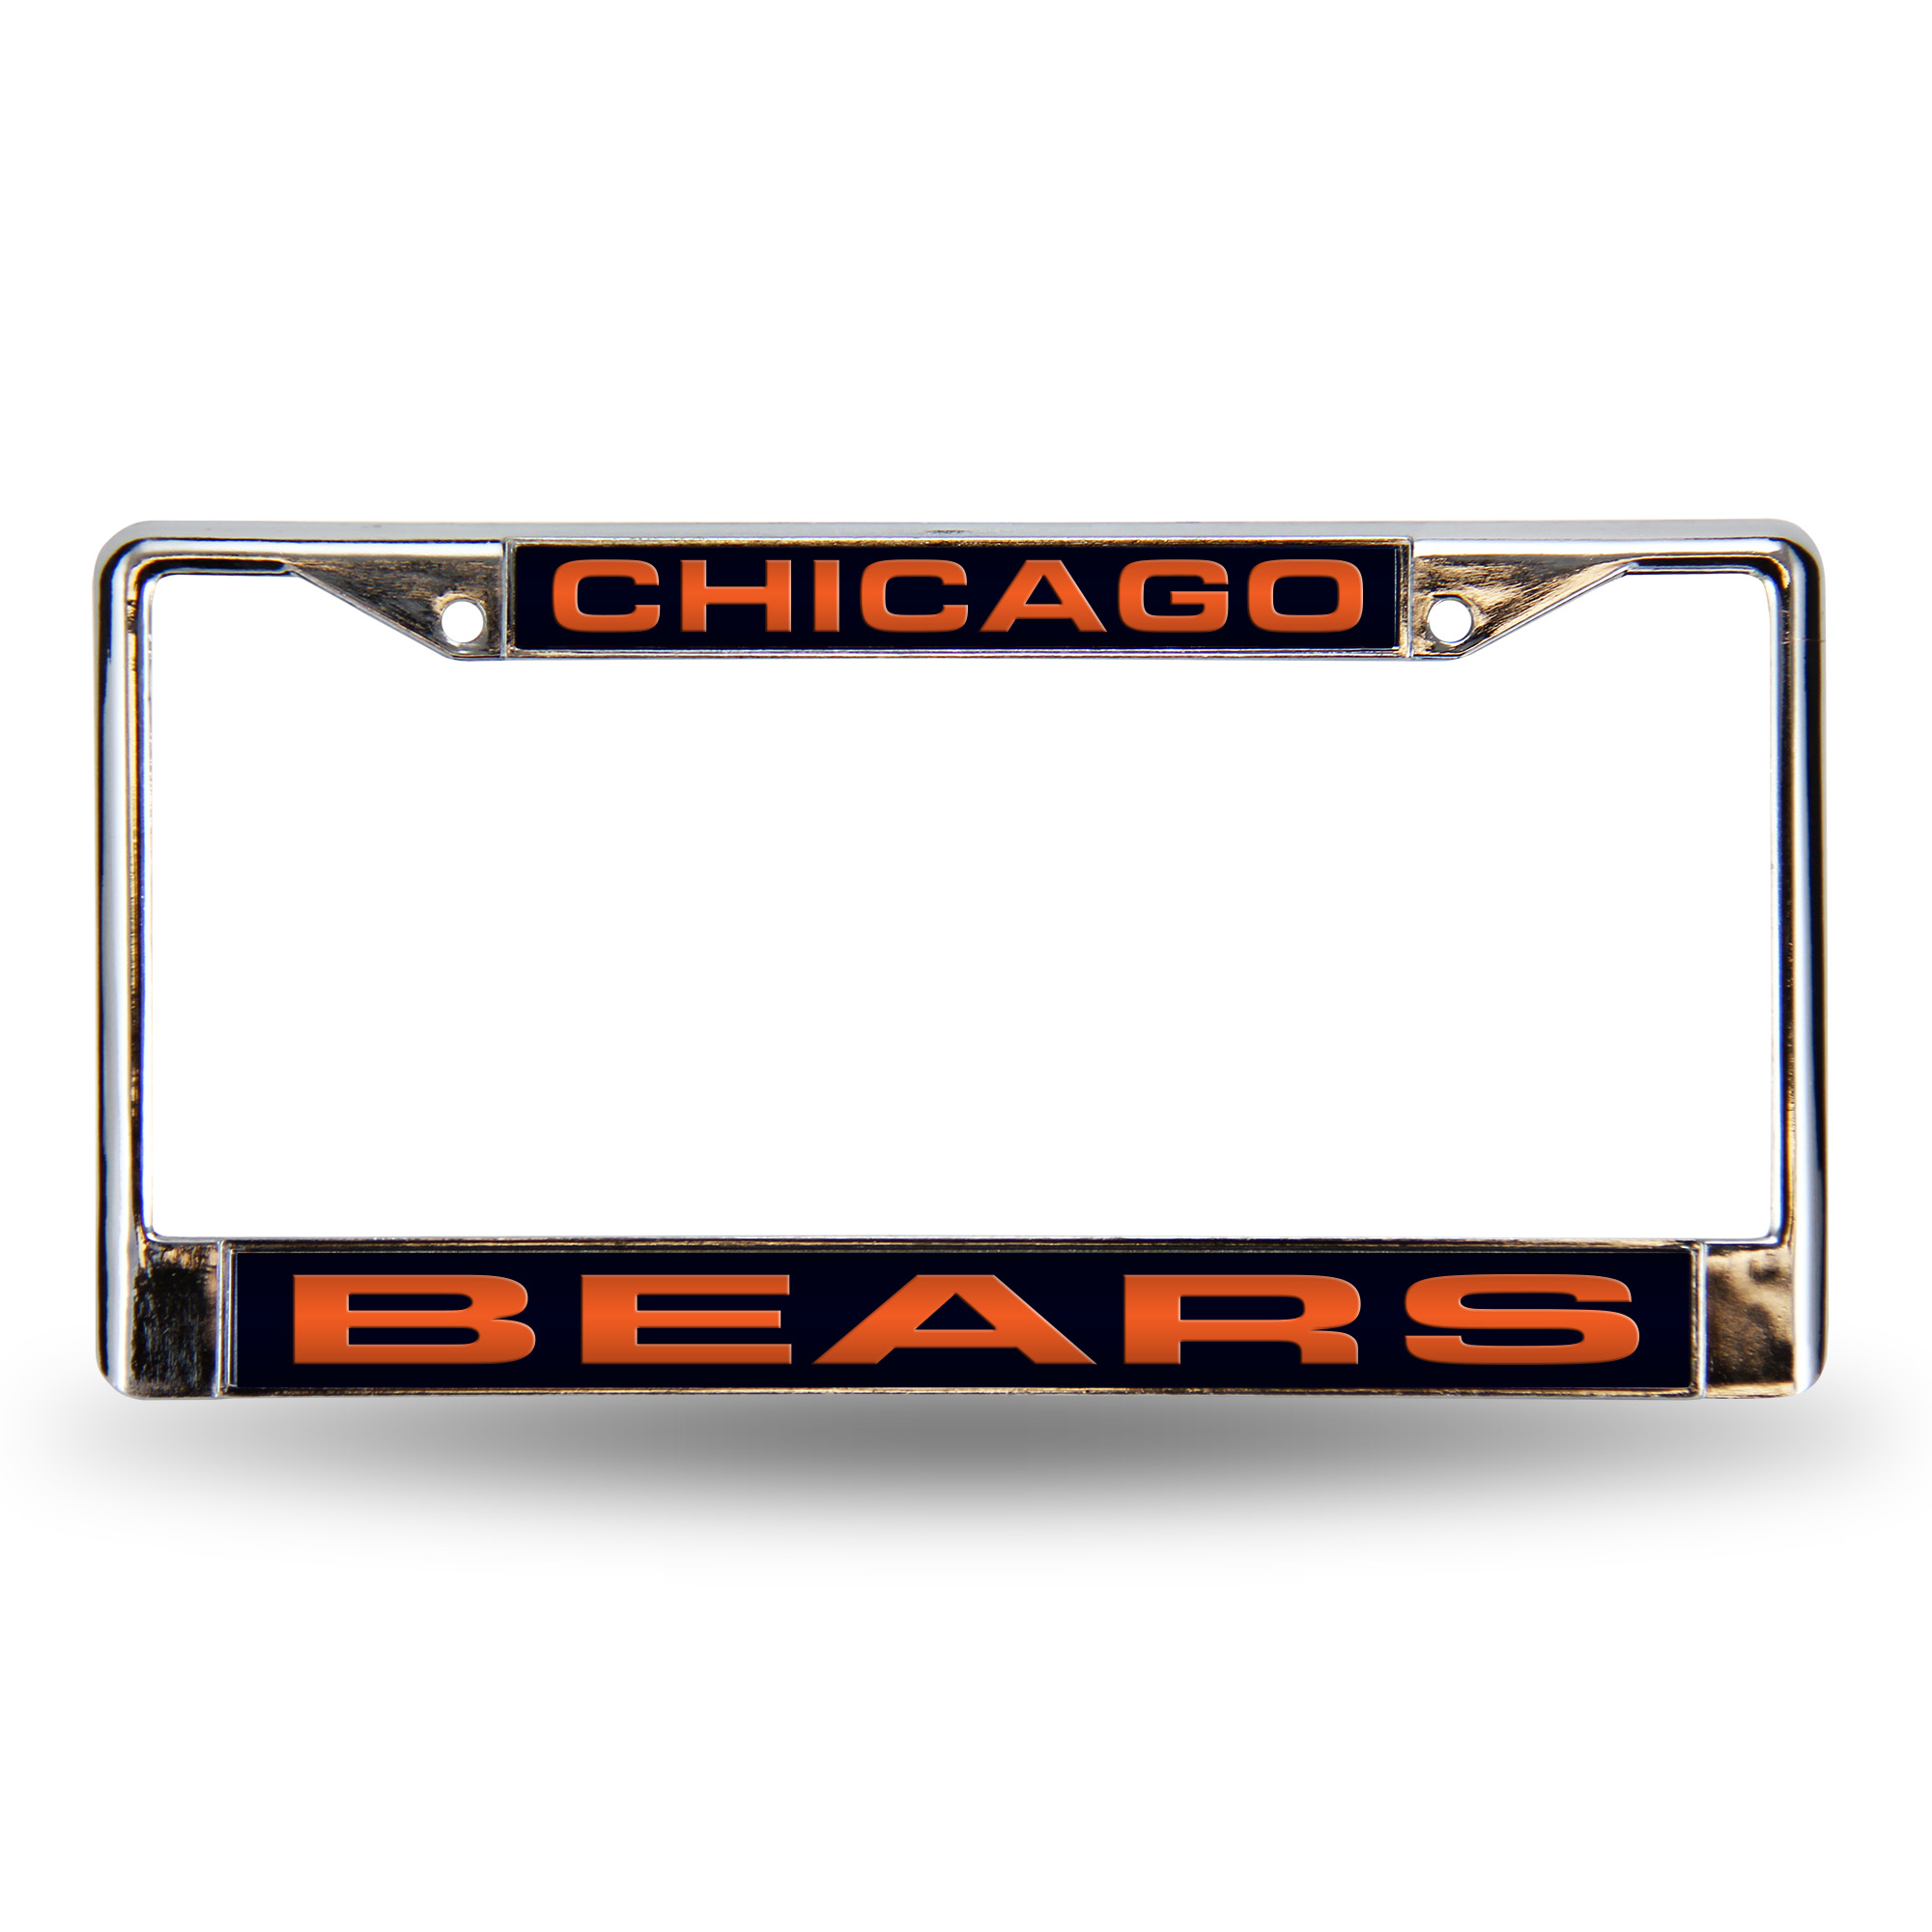 Customize NFL License Plate Frames by Auto Plates